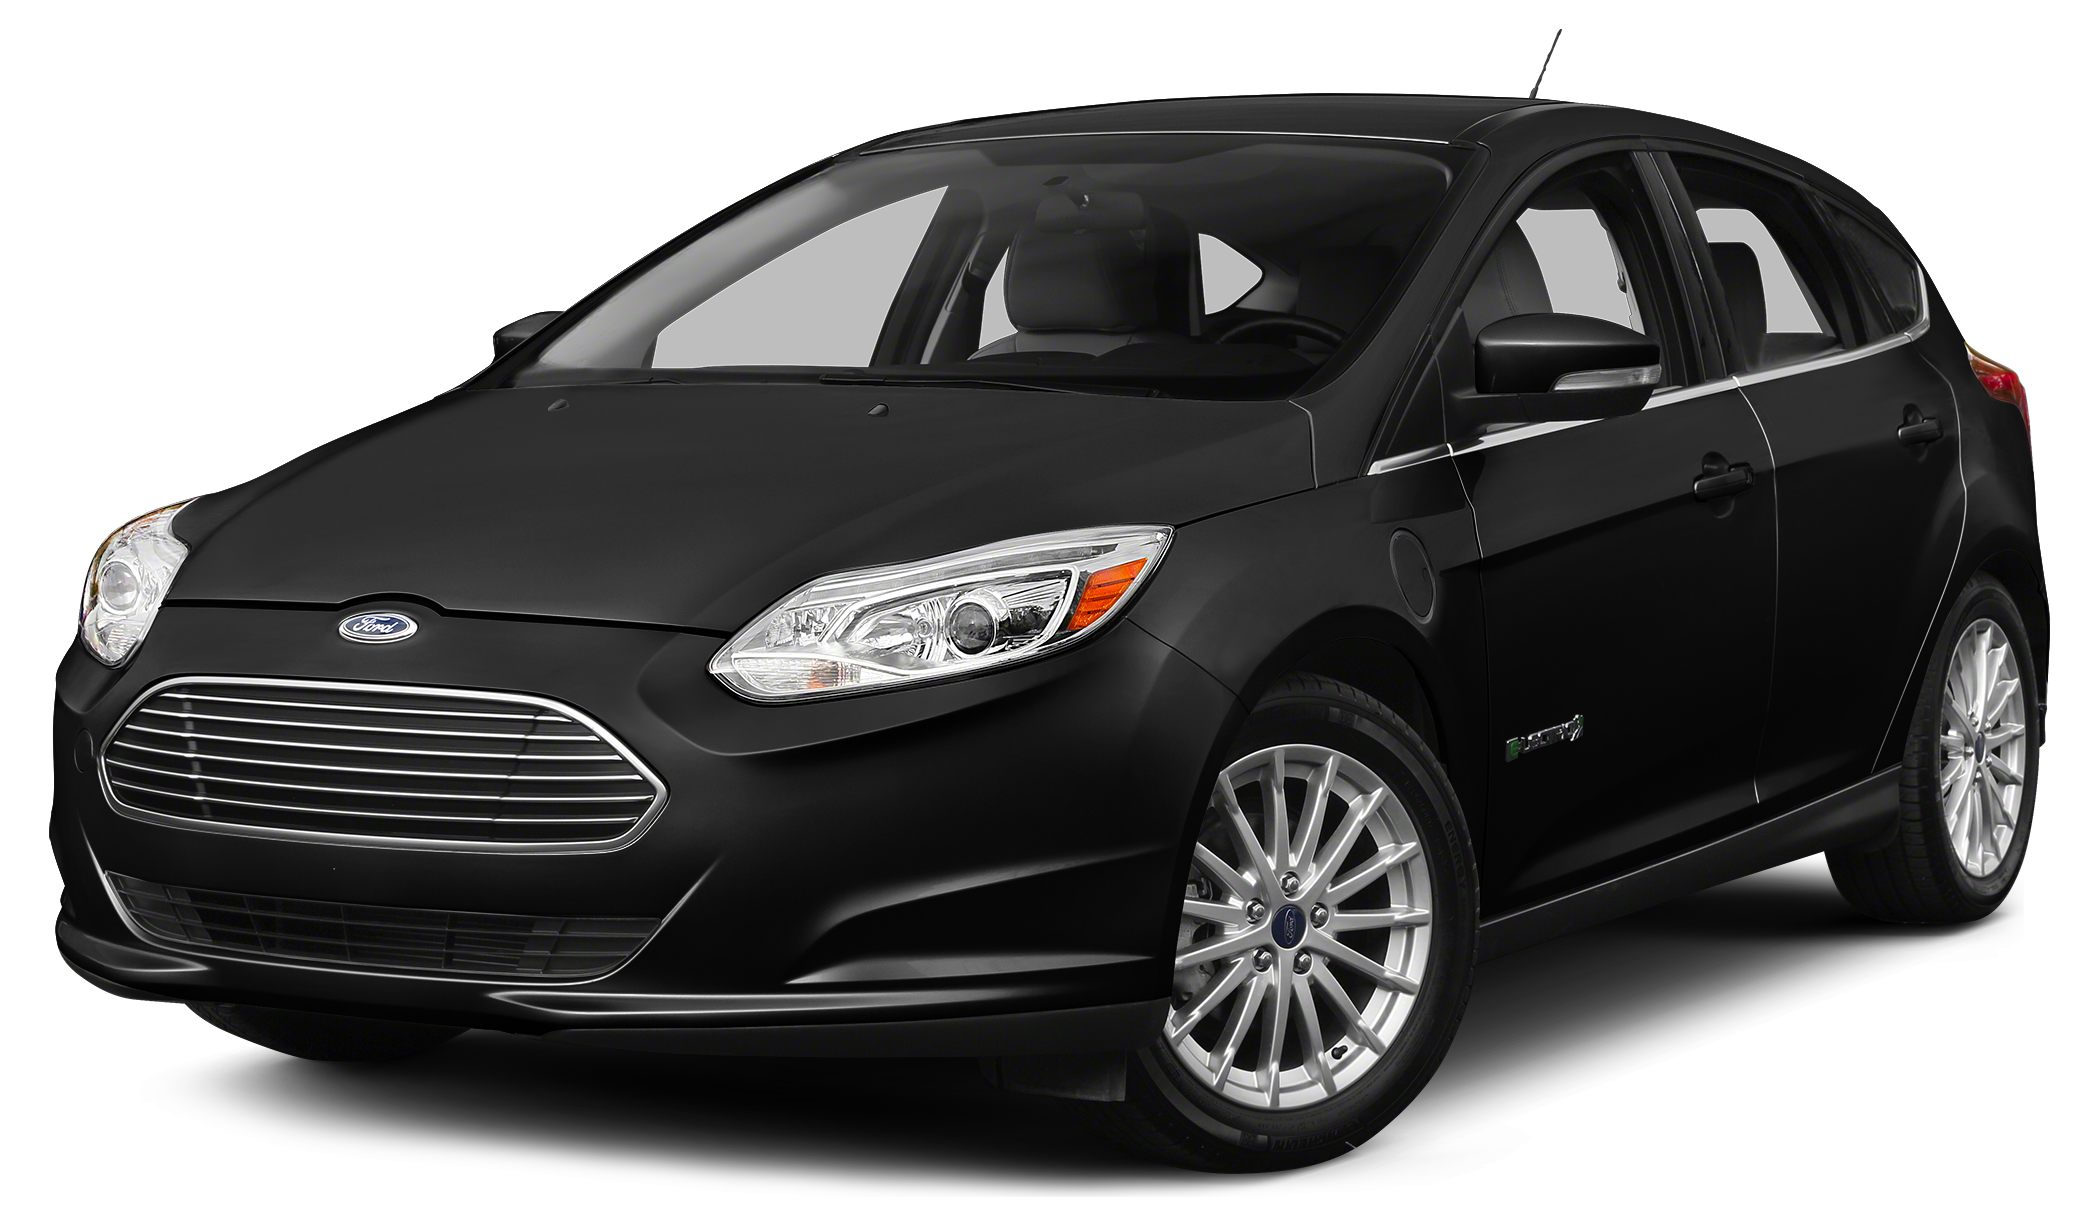 2014 Ford Focus Electric Exterior